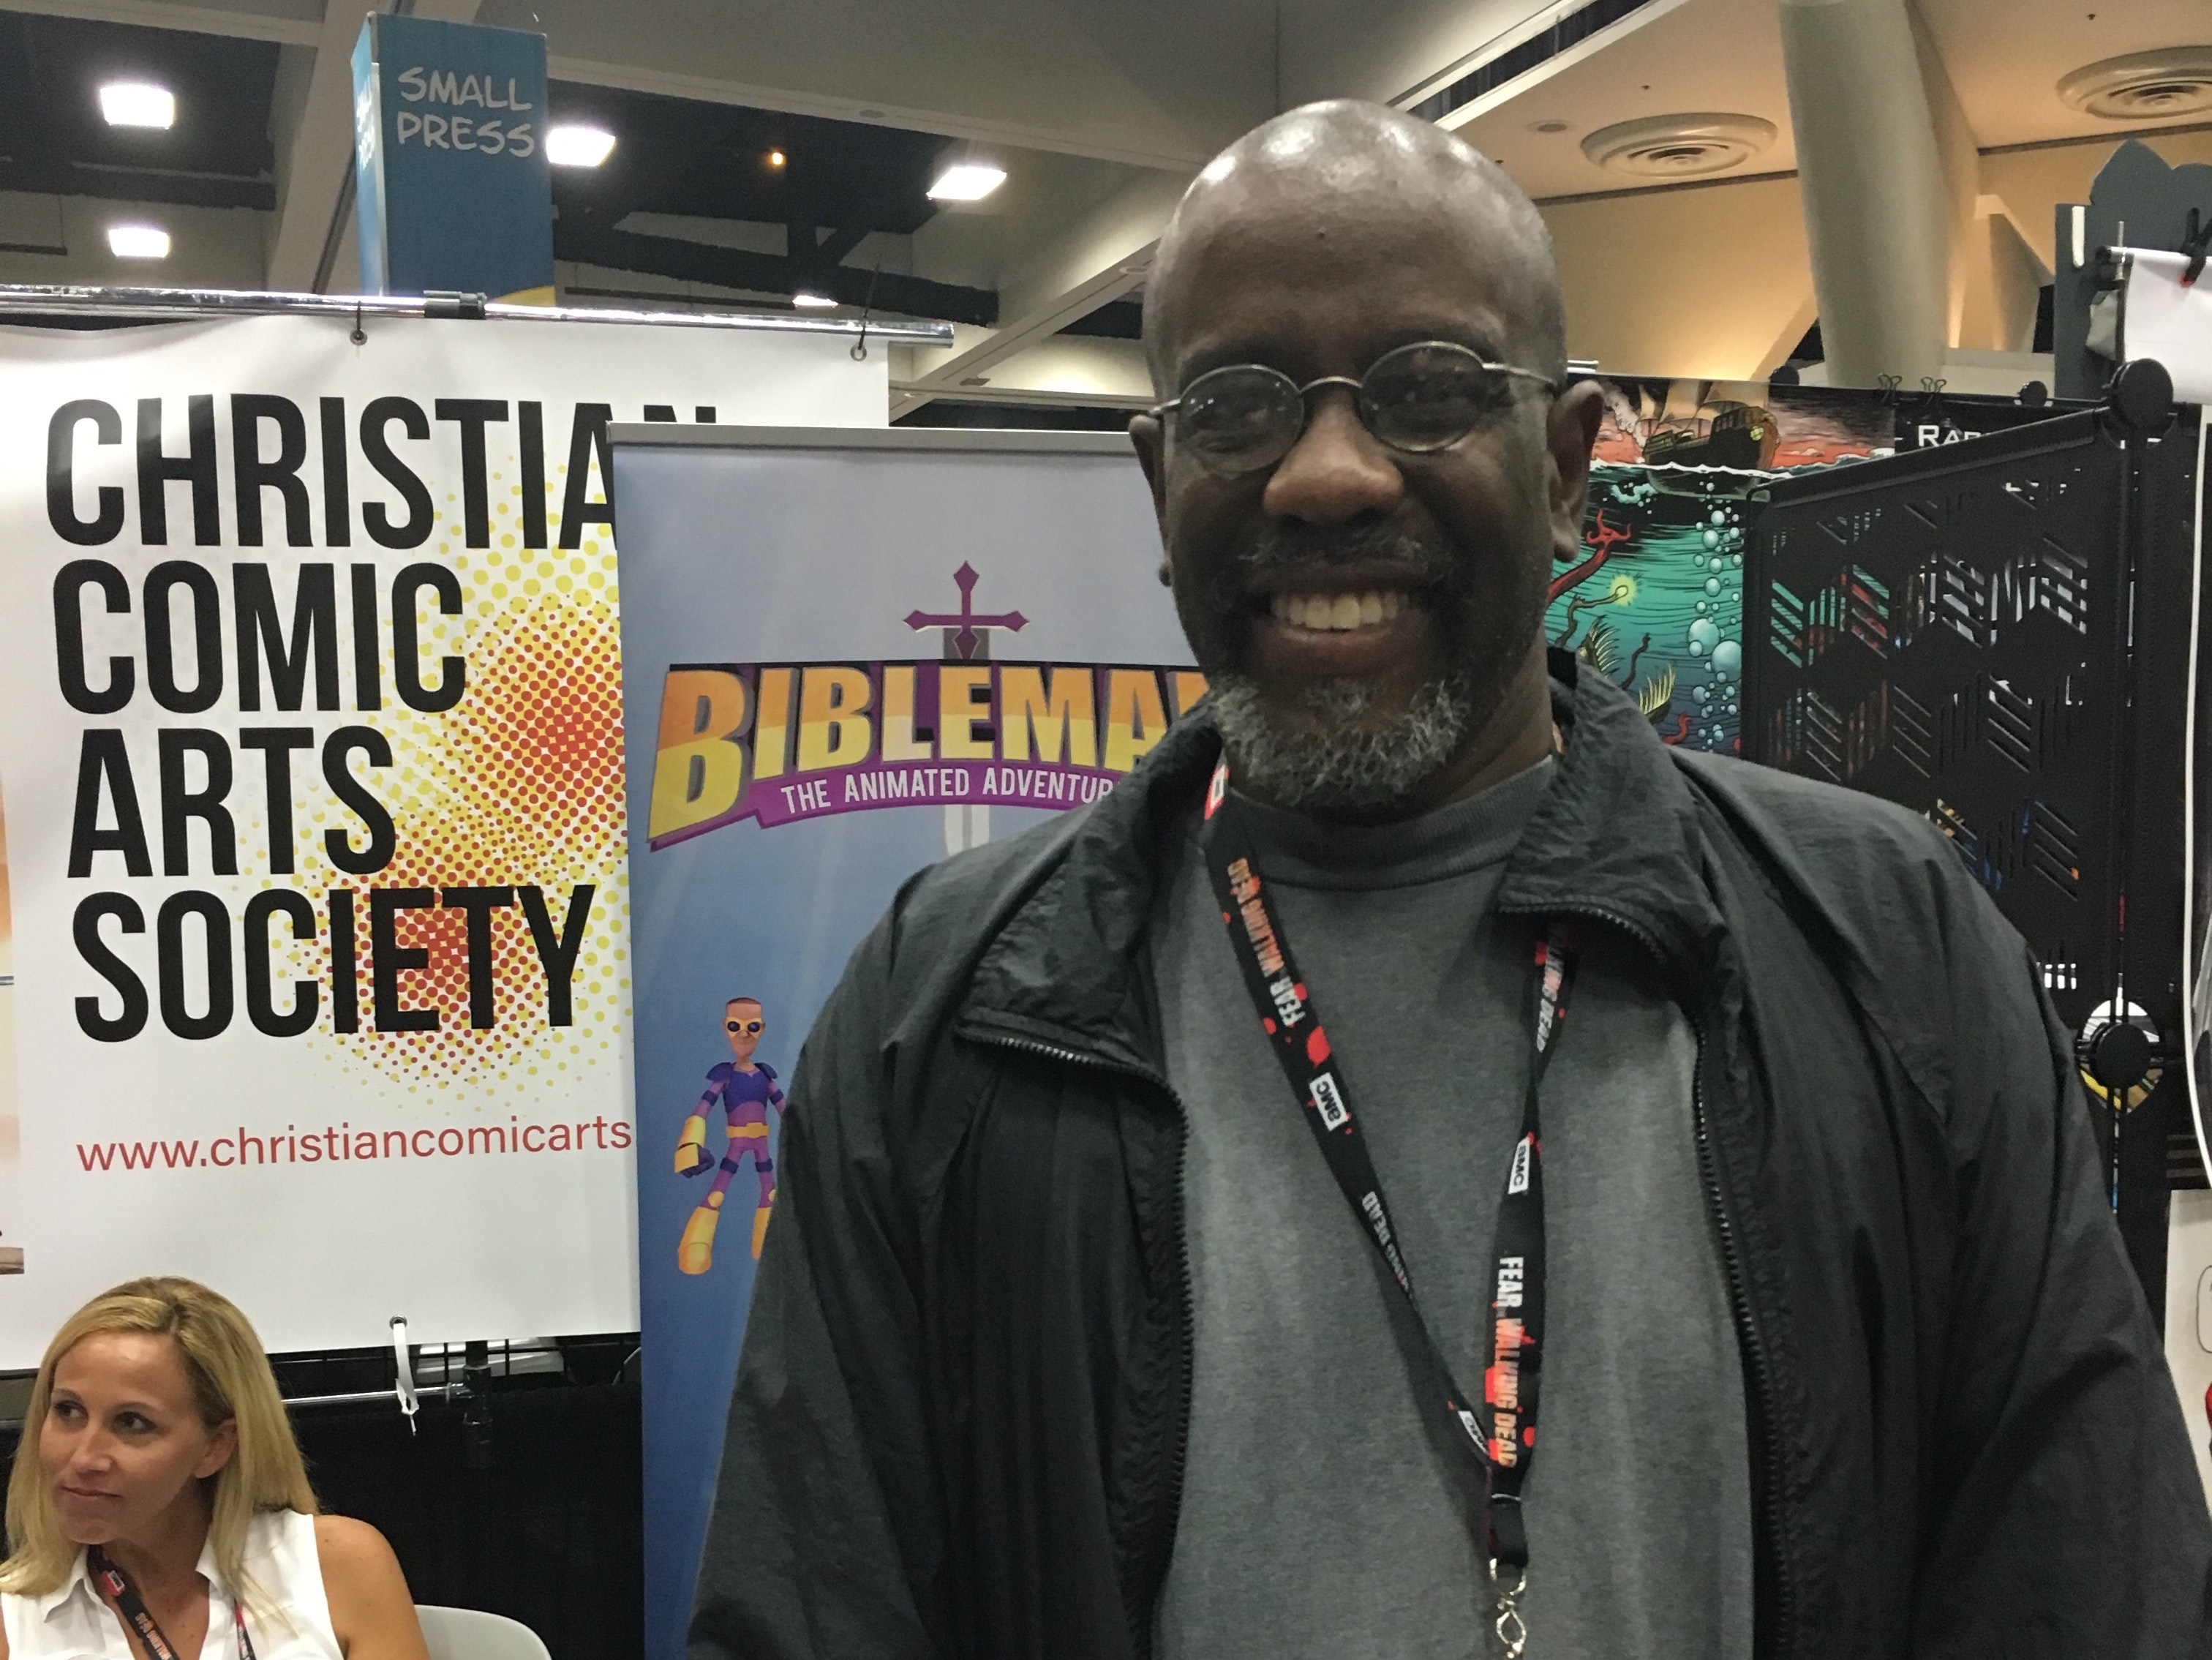 Jesus Christ, Superhero: Inside Christianity's Comic-Con Booth